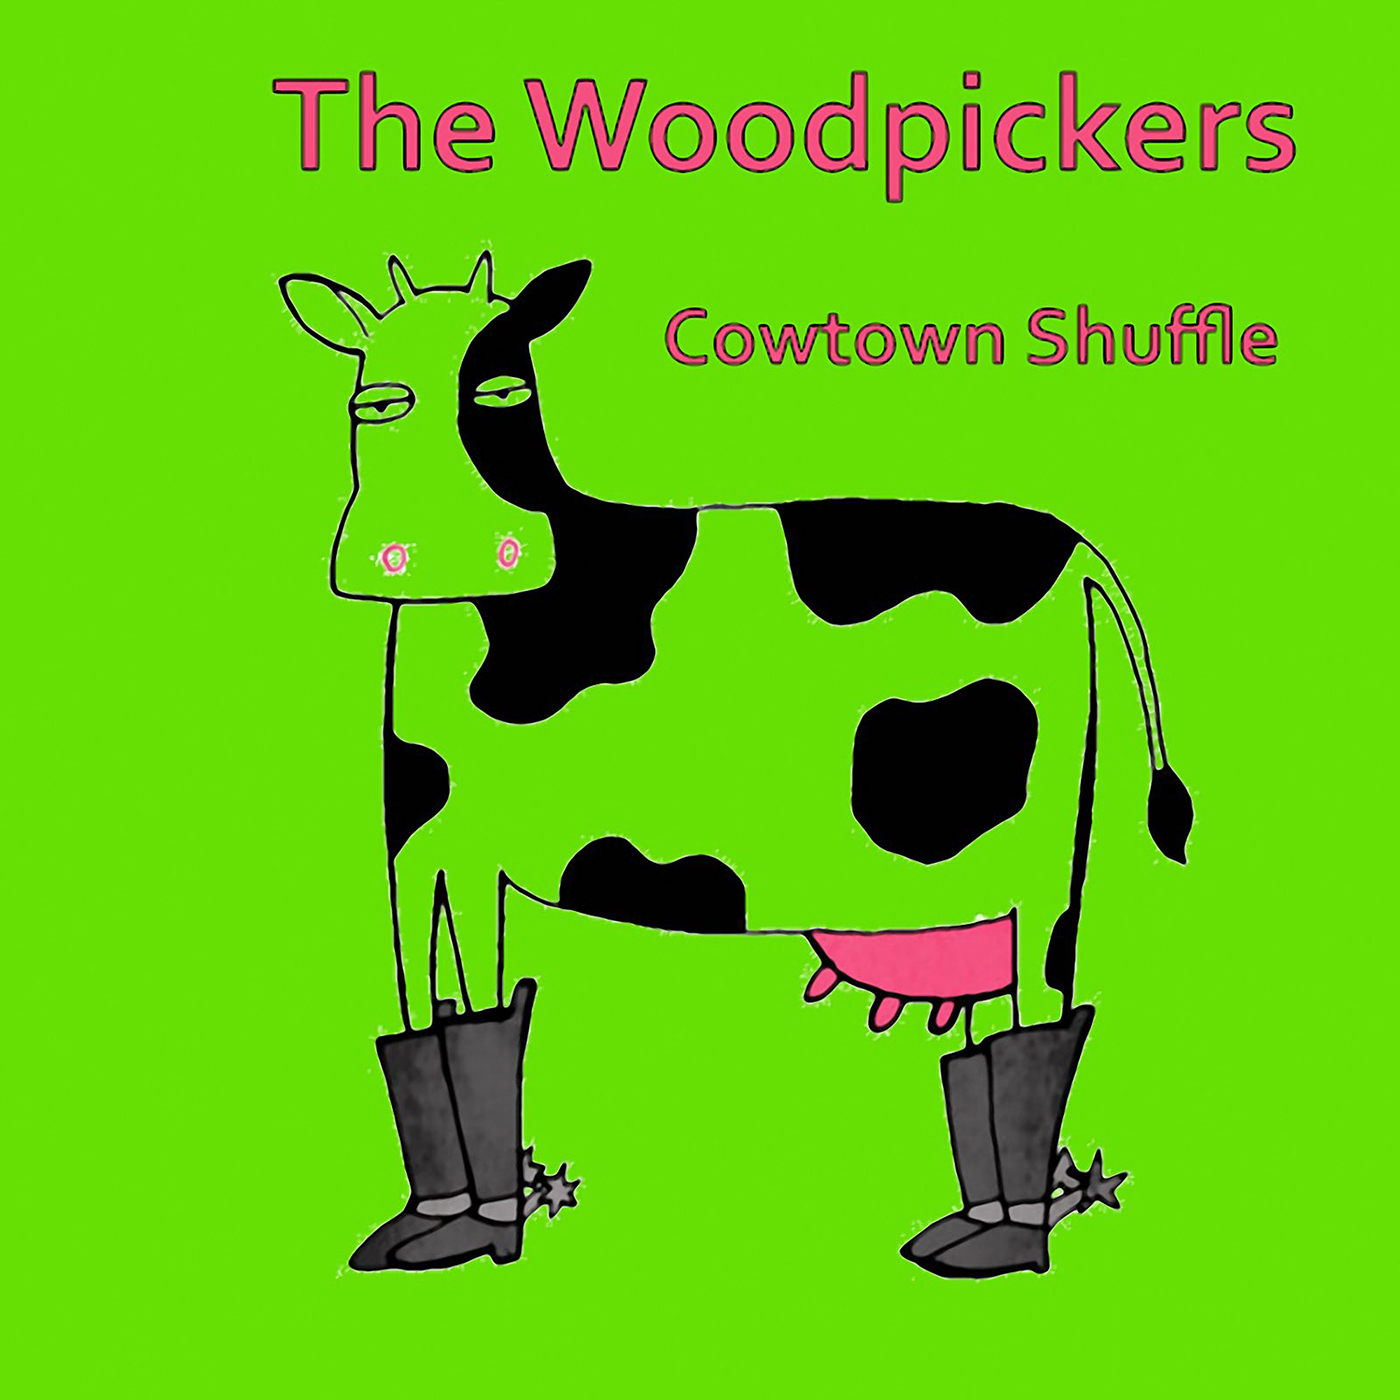 The Woodpickers - Cowtown Shuffle